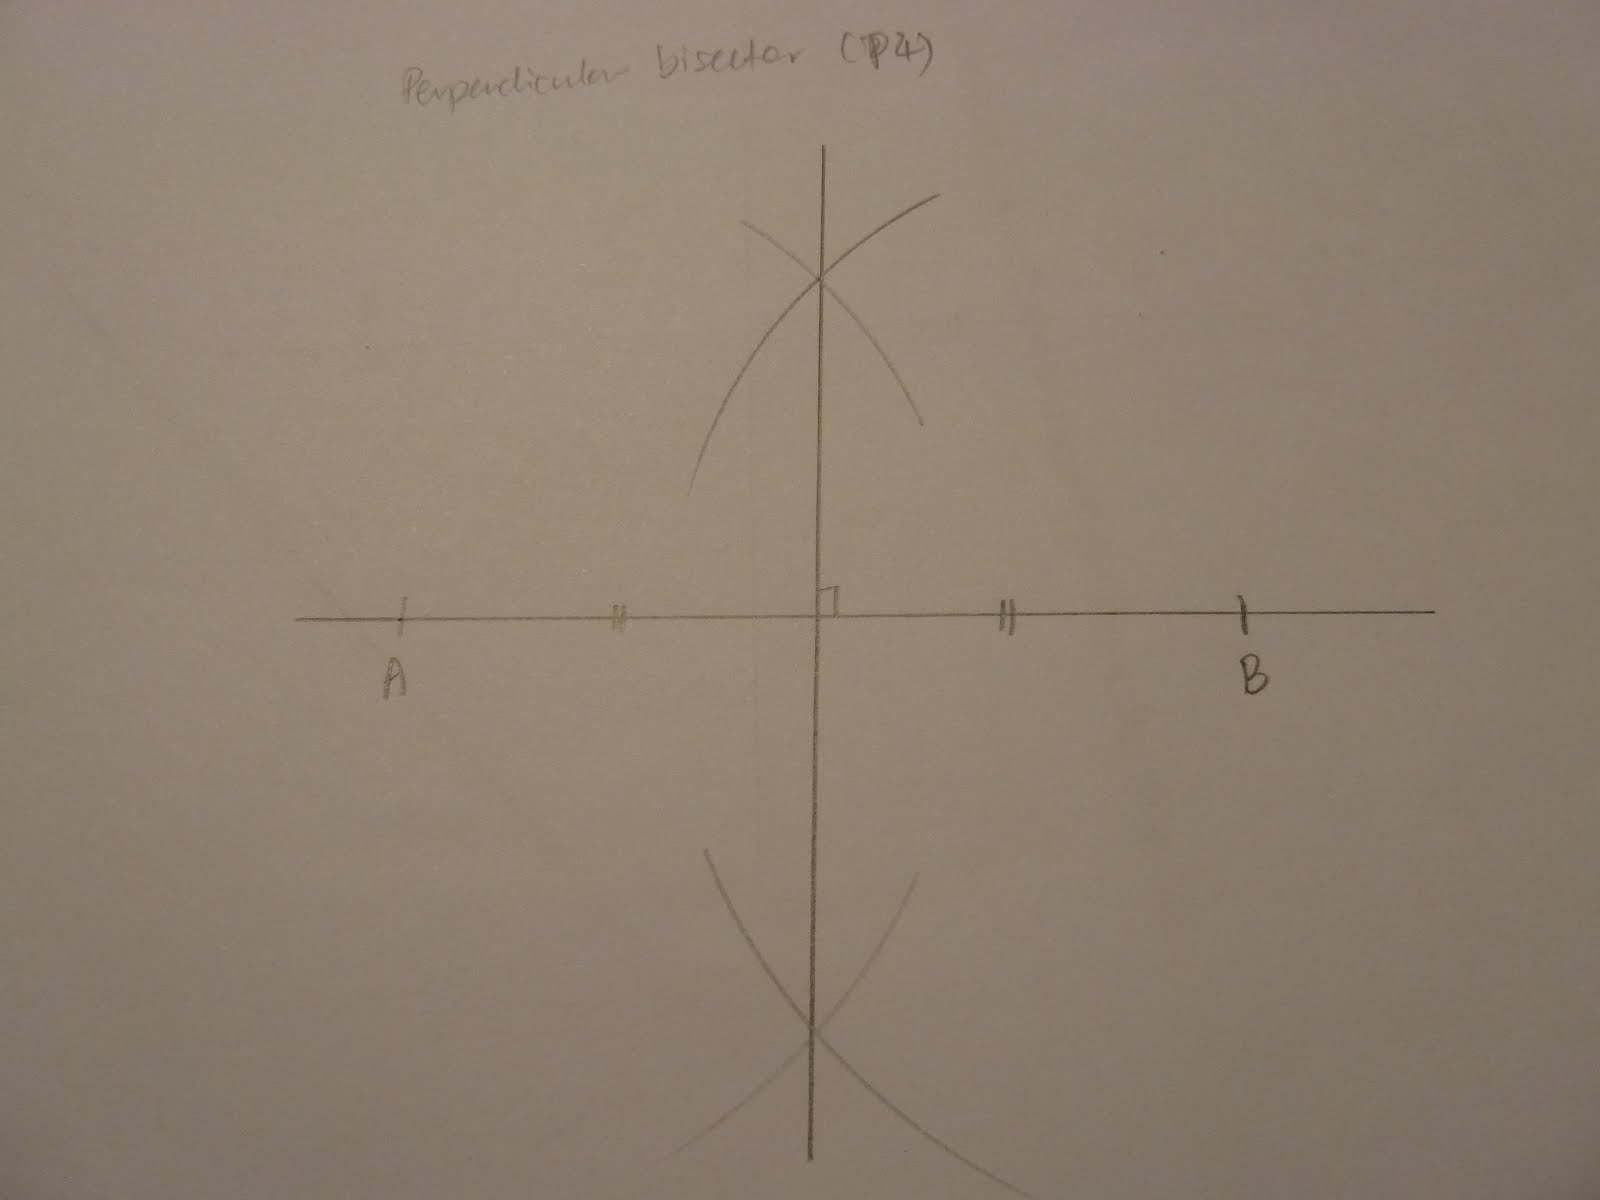 Construct Construct The Perpendicular Bisector